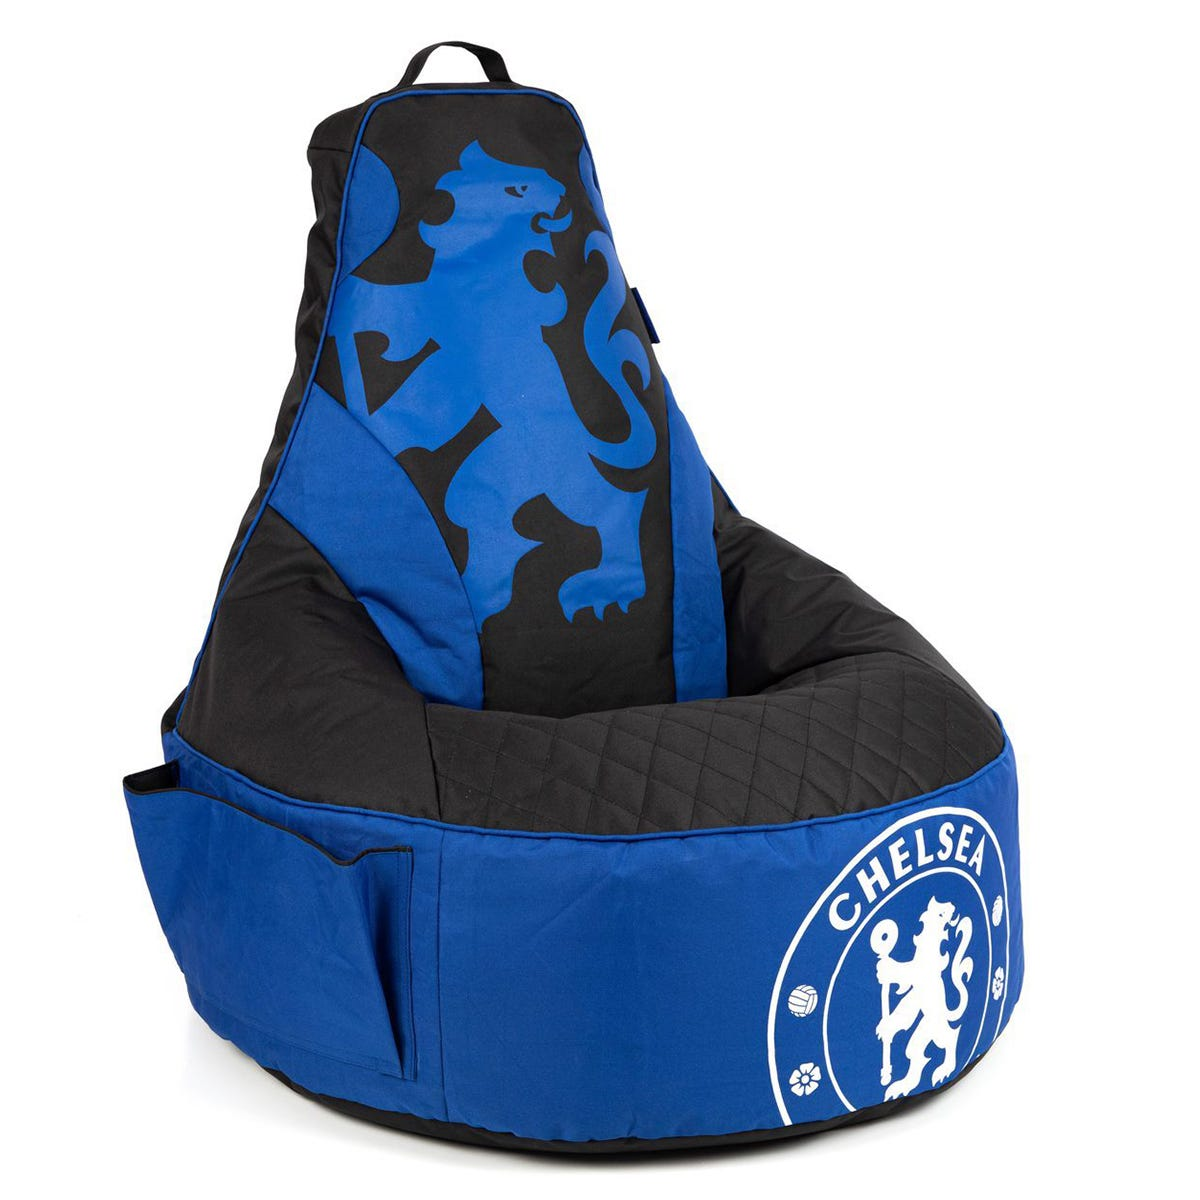 Province 5 Chelsea FC Big Chill Gaming Bean Bag Chair